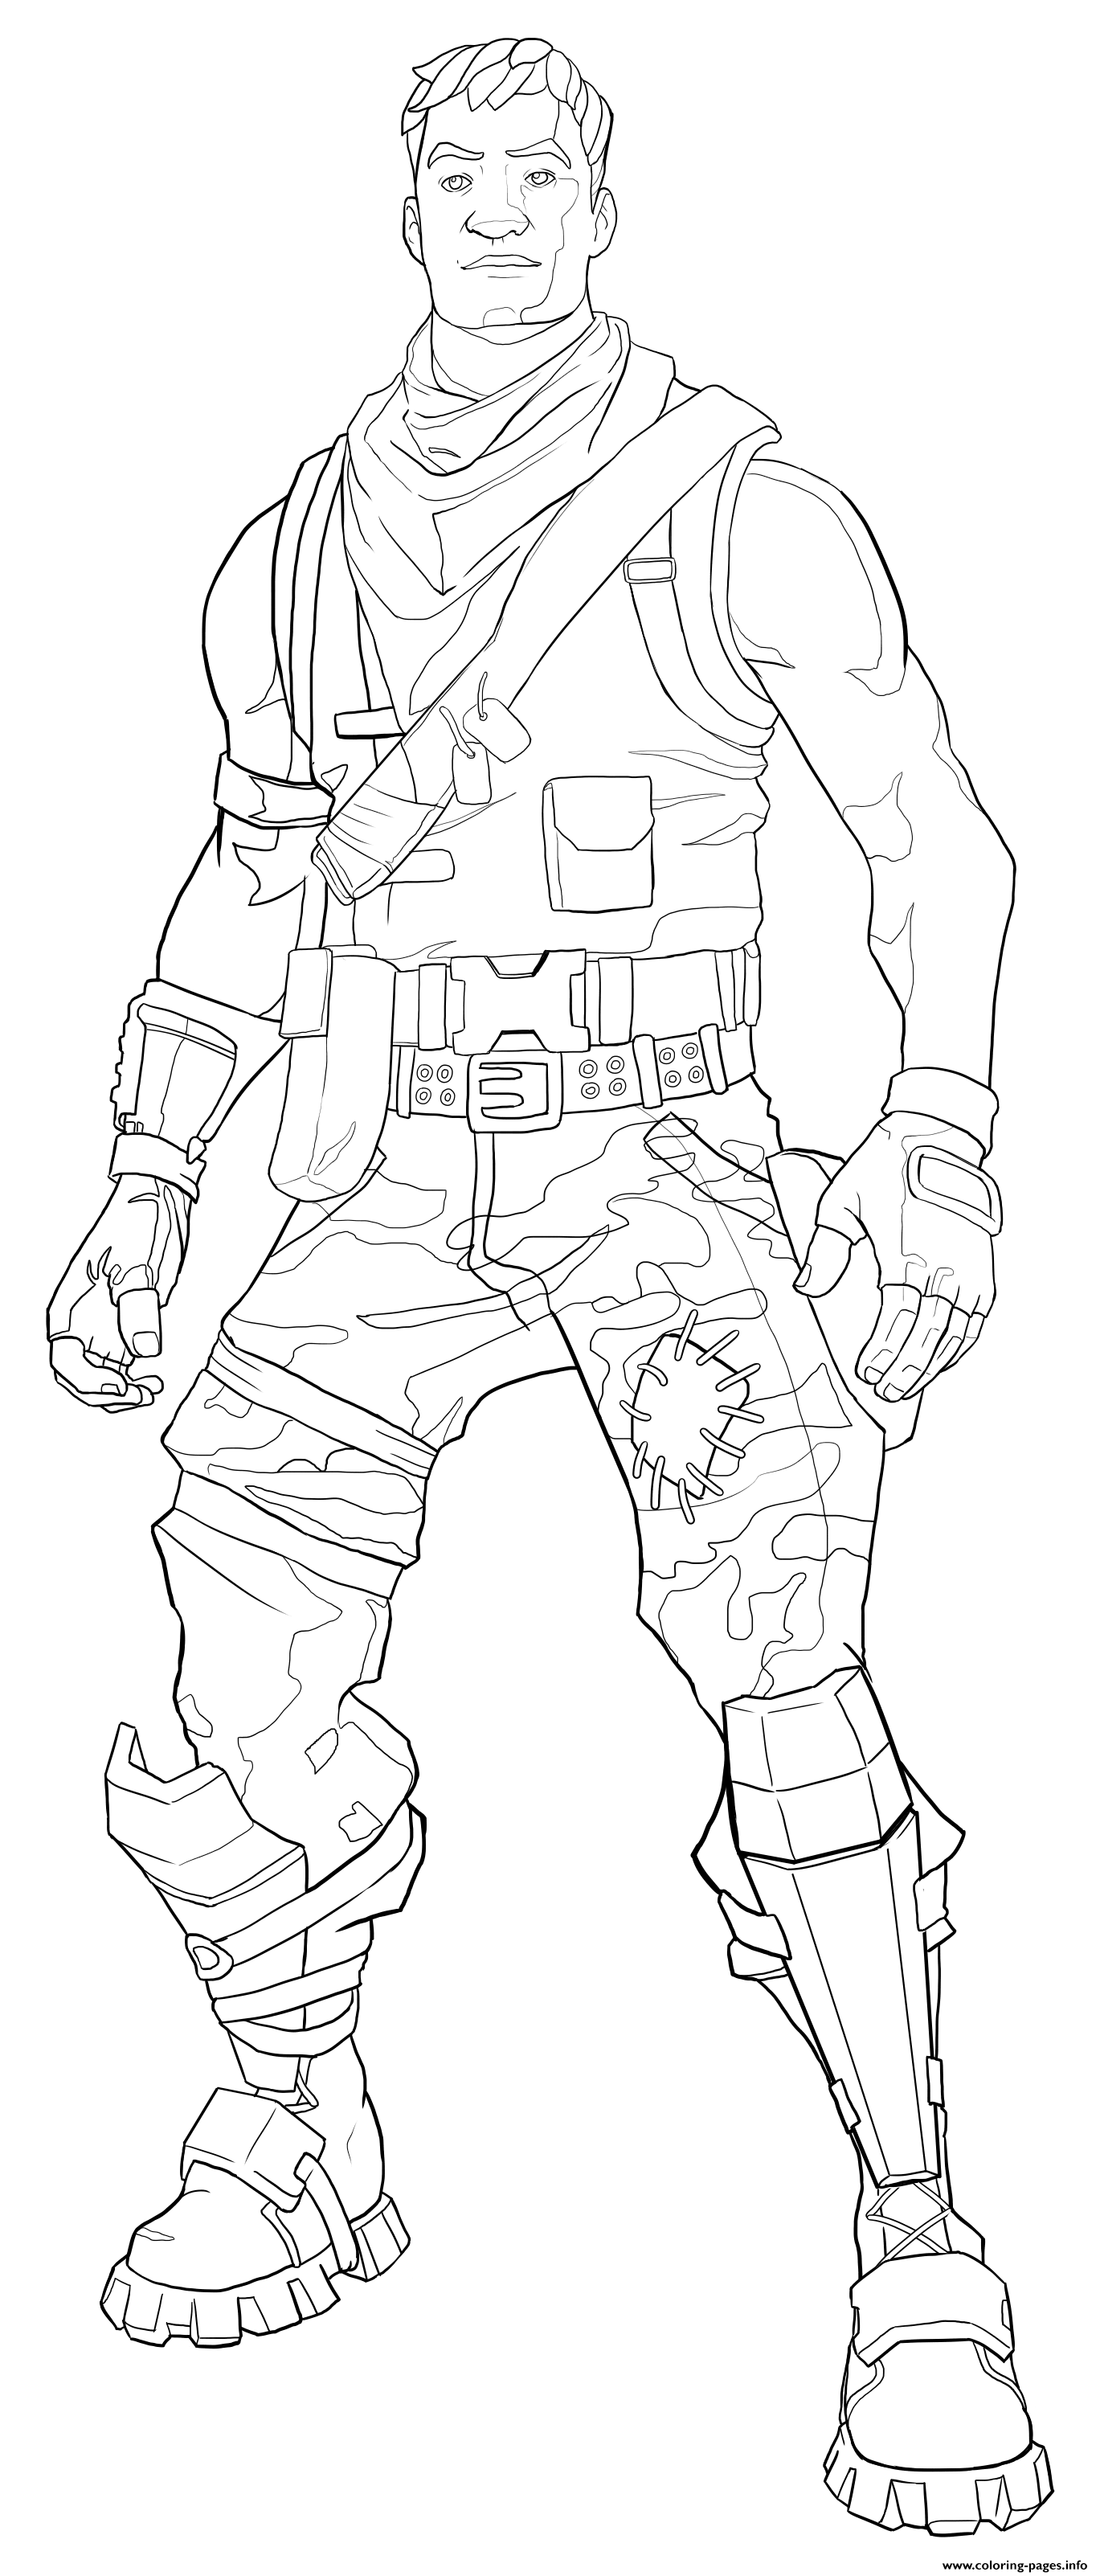 Fortnite Default Skin Coloring Page Male coloring pages